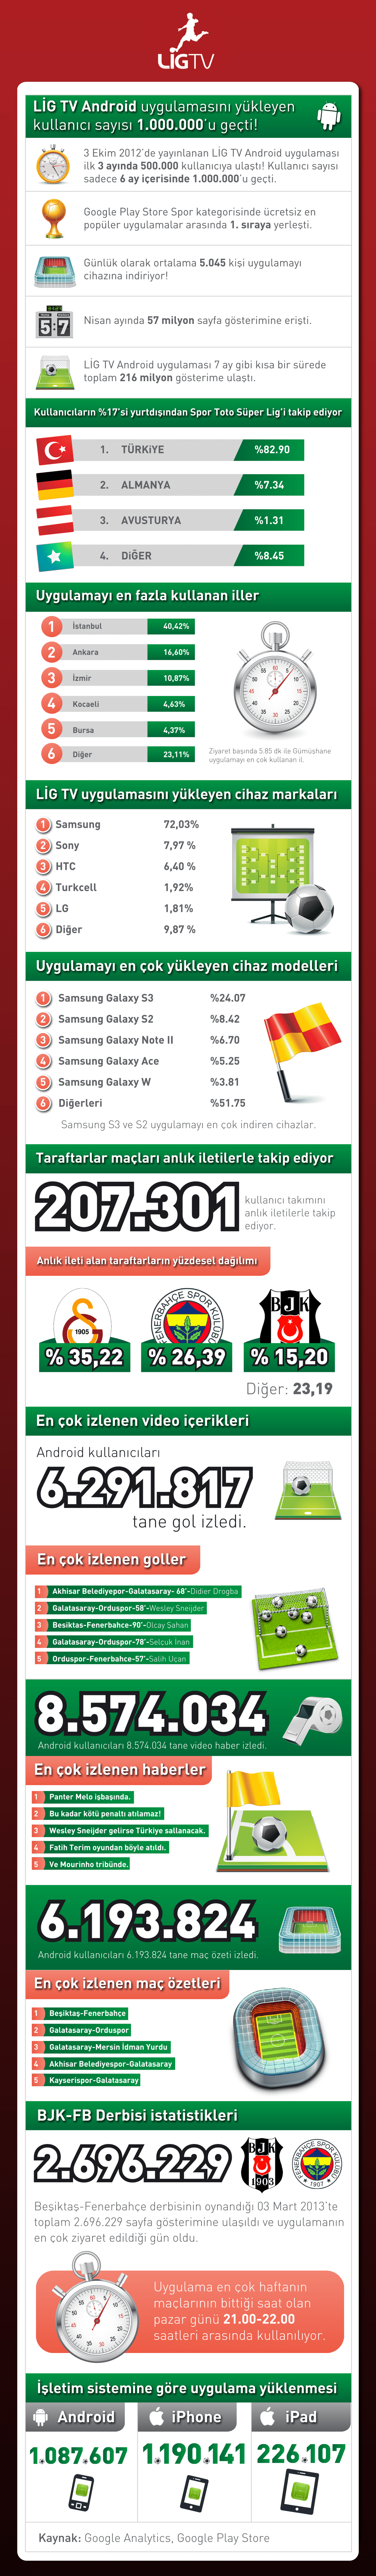 lig-tv-android-uygulama-infografik